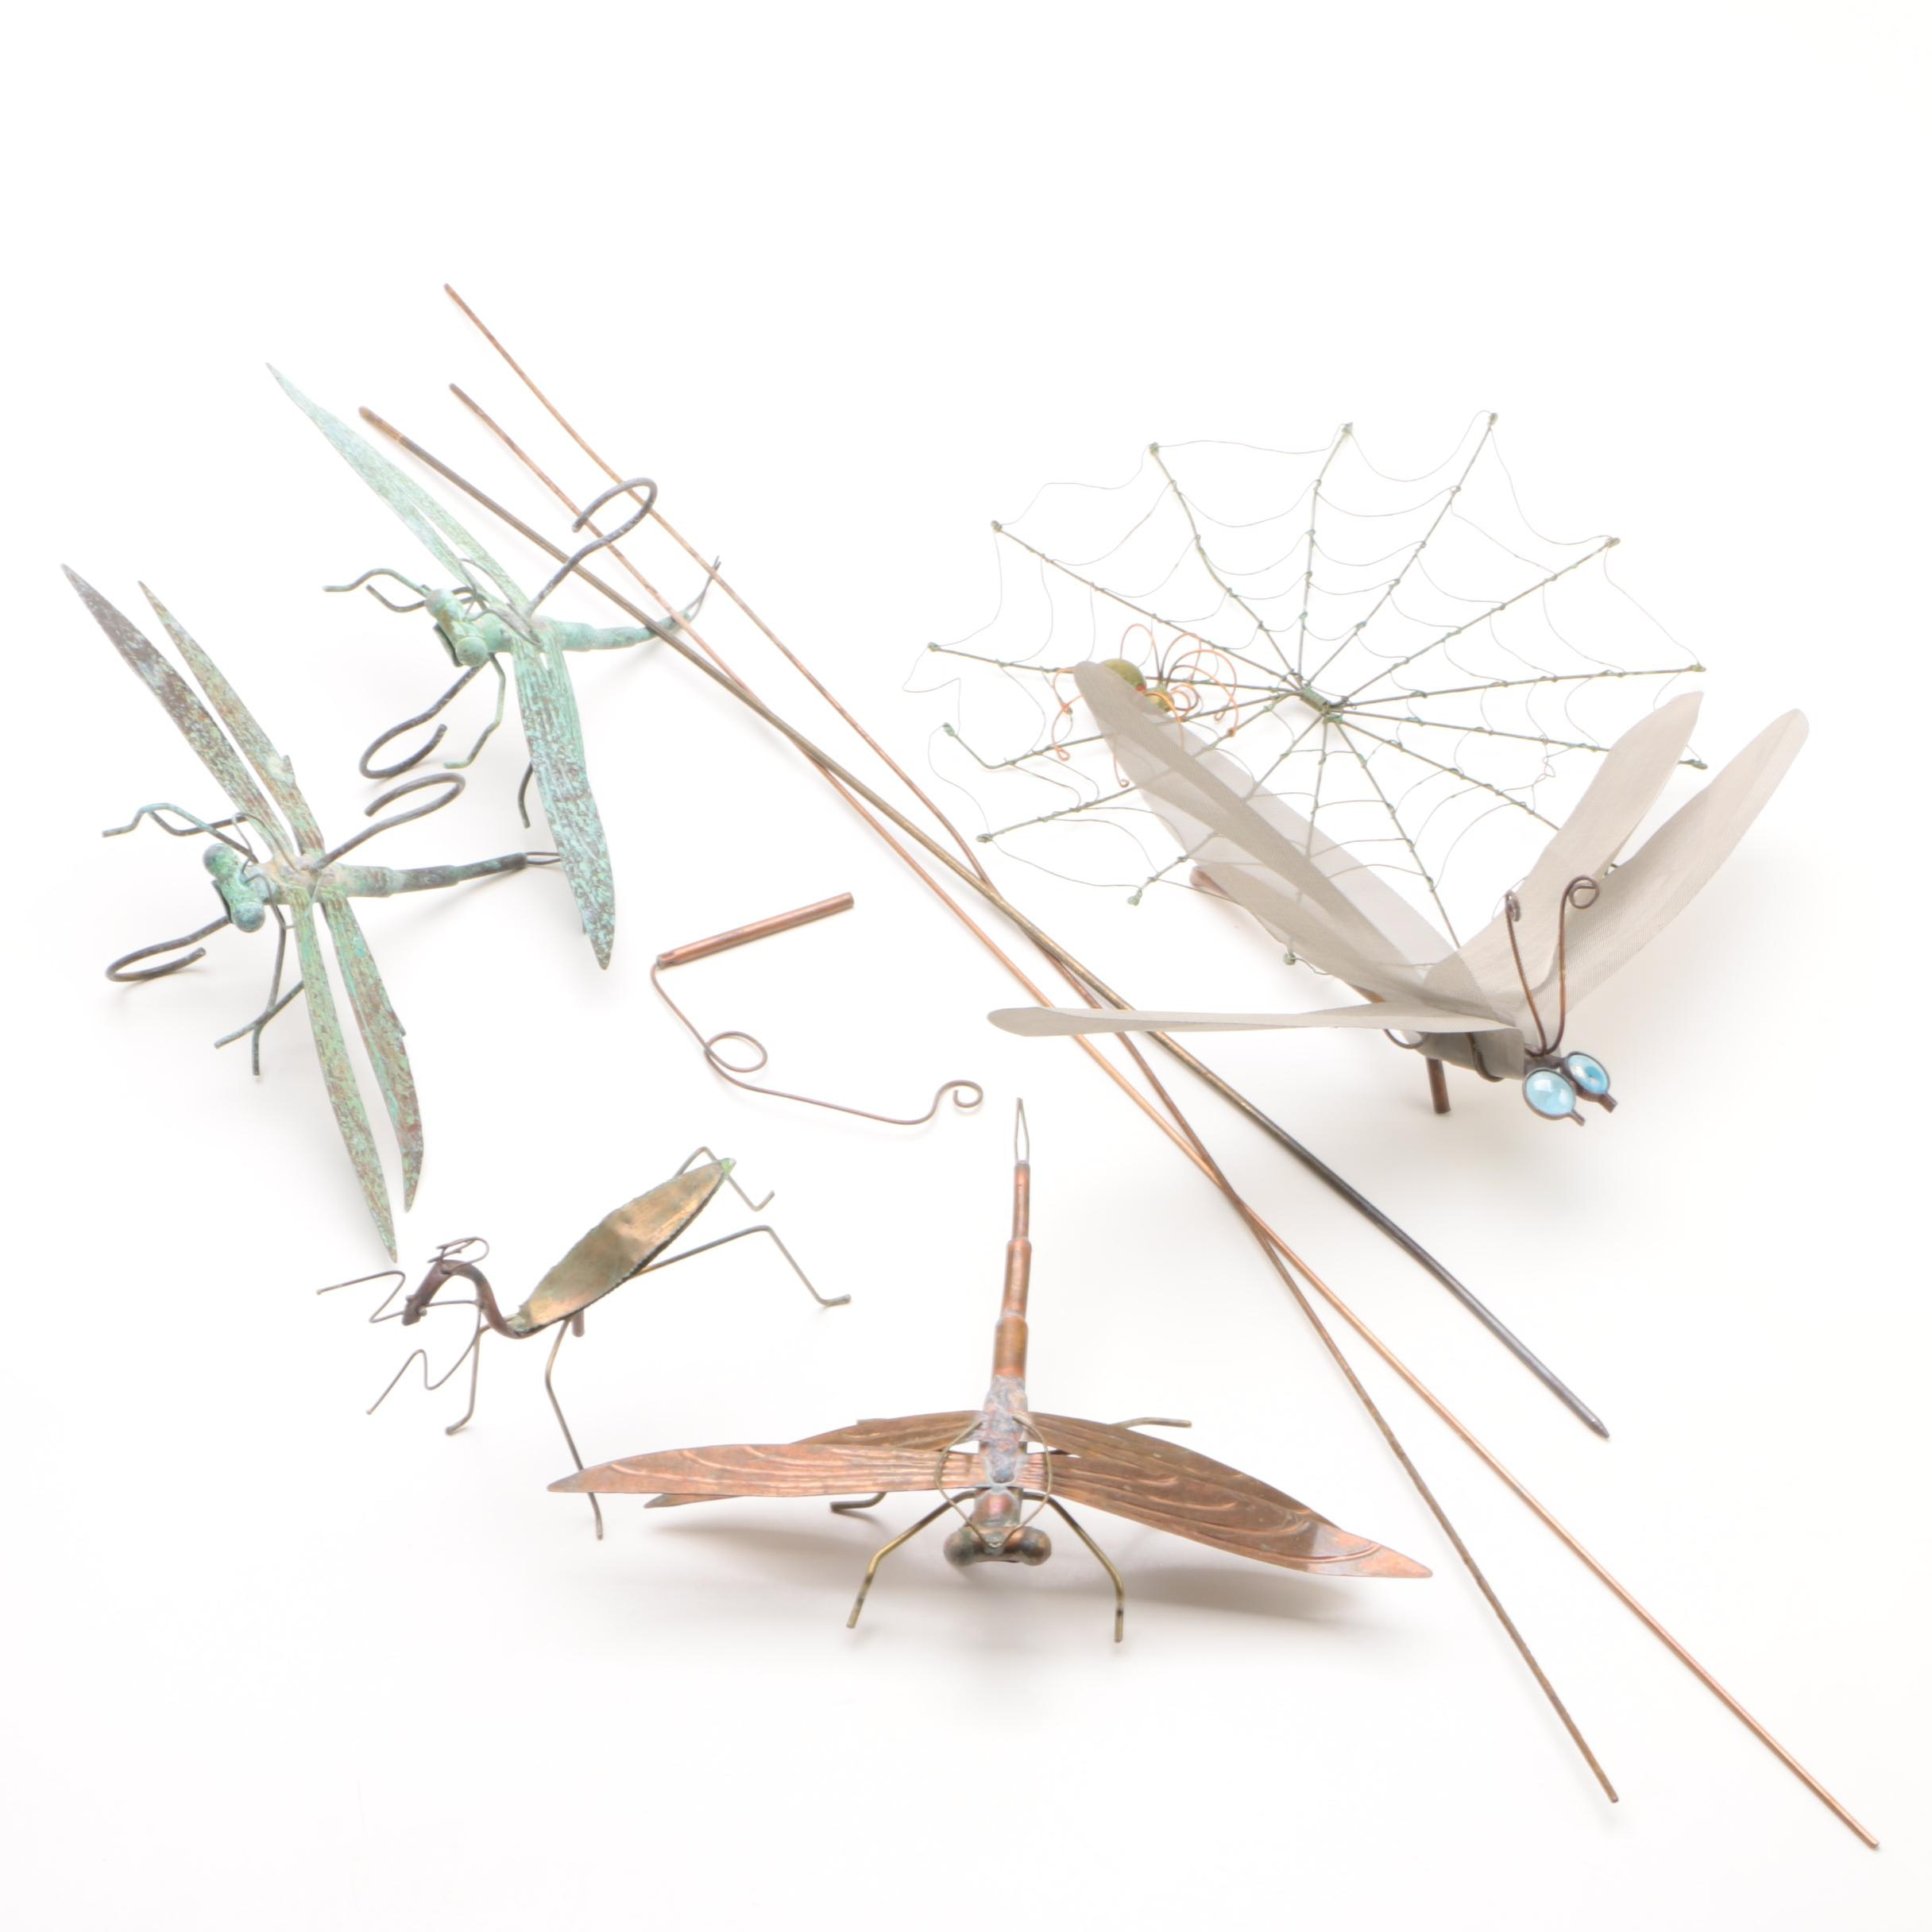 Contemporary Copper Insect Themed Garden Ornaments